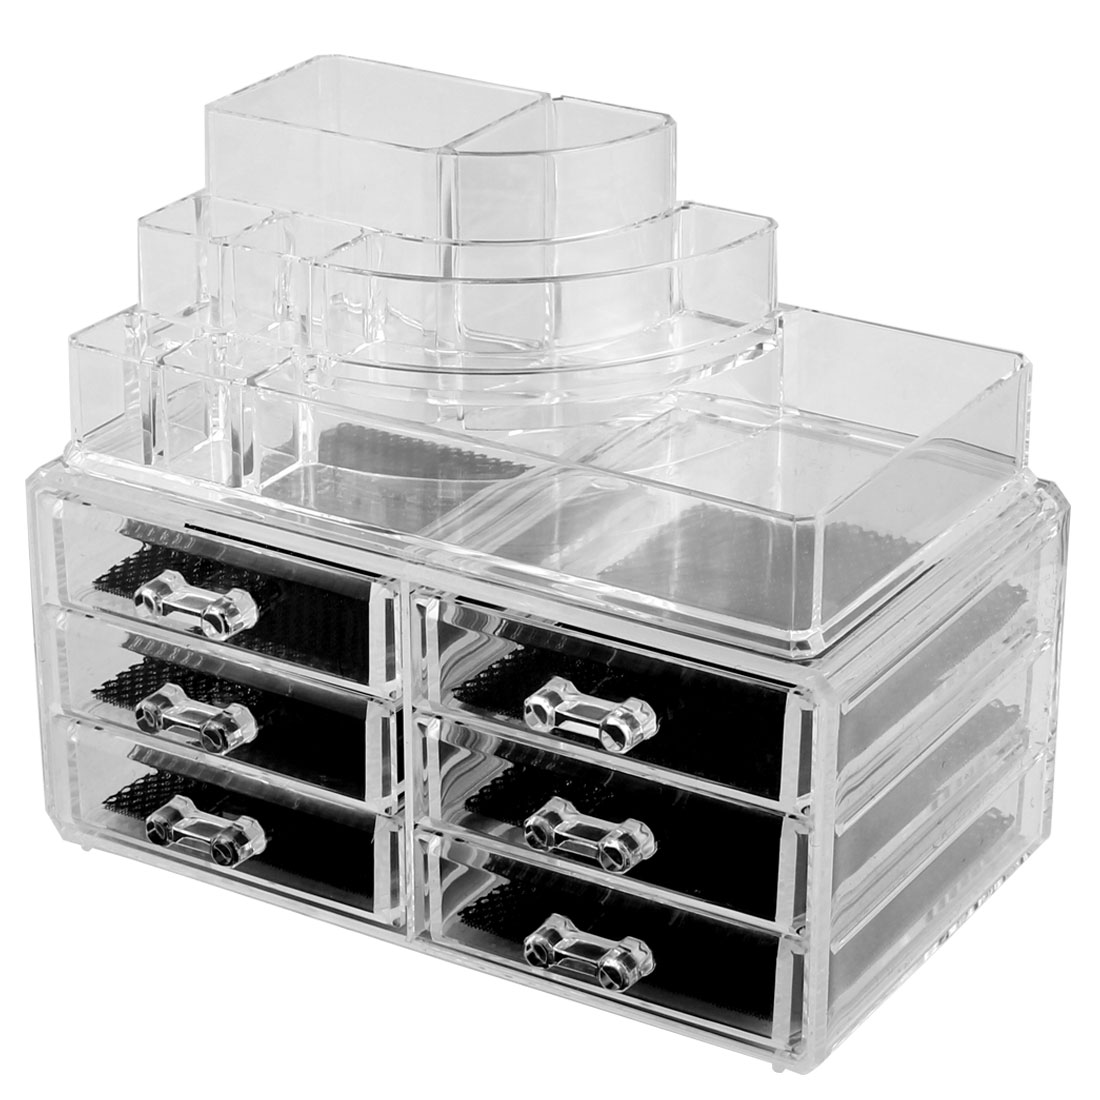 Home Acrylic Multilayers Jewelry Comestic Storage Organizer Display Box Set 2 in 1